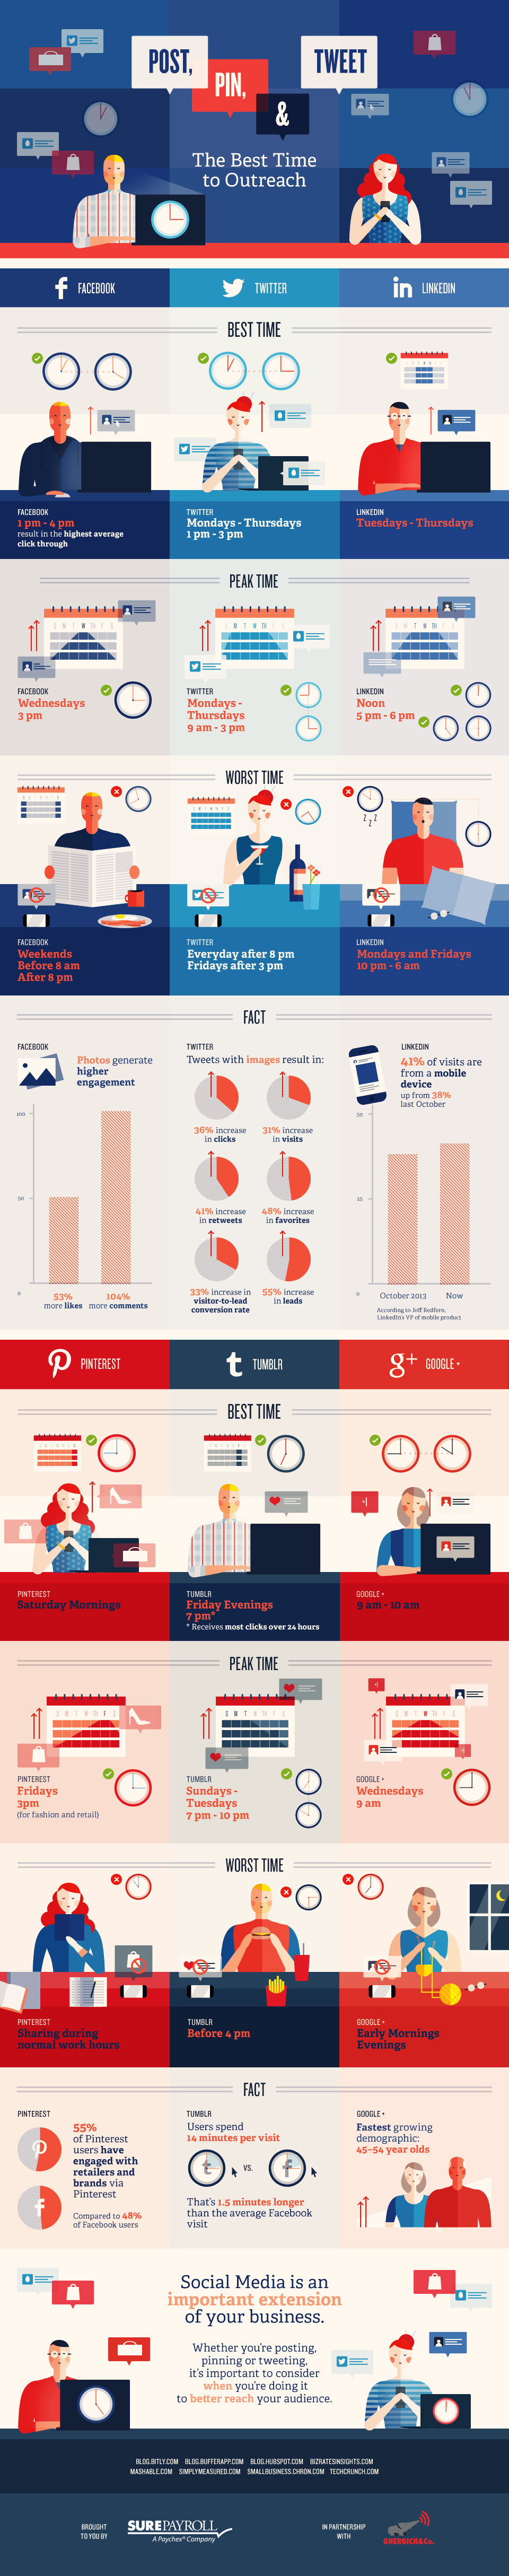 best time to use social media infographic